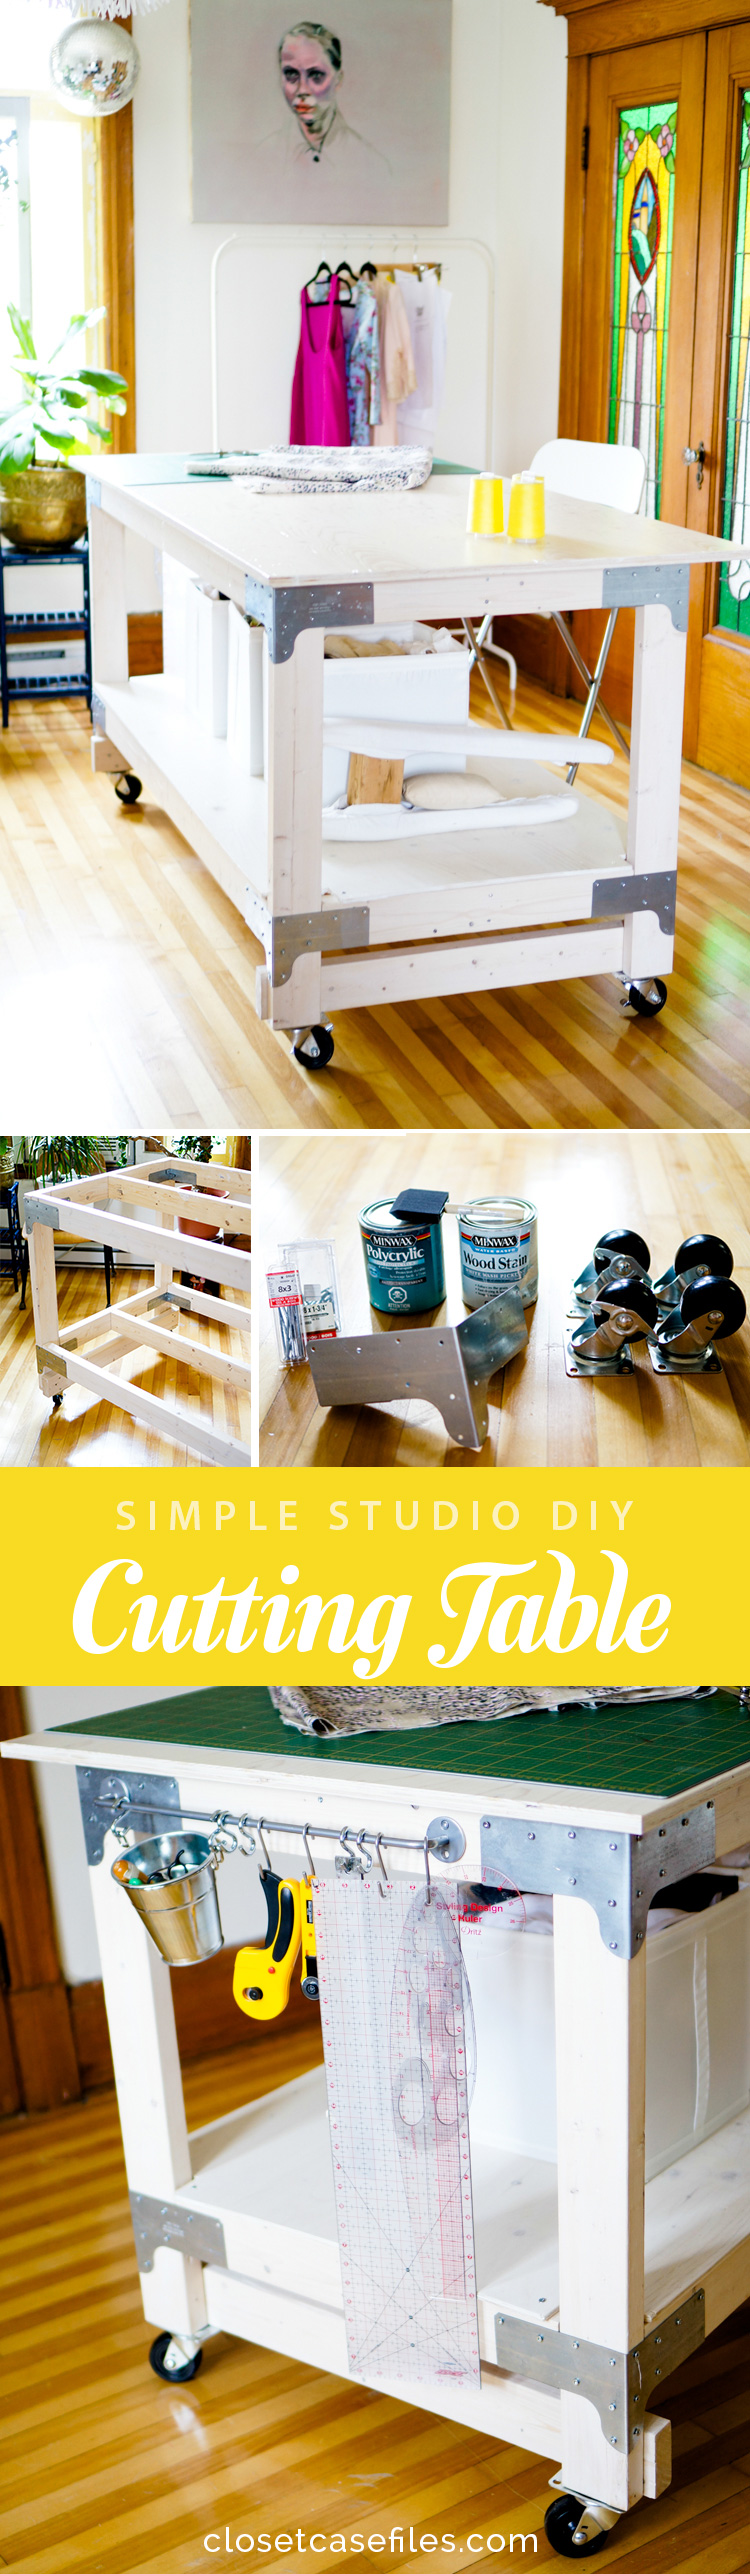 Cutting Table DIY // Simple Studio Project // Closet Case Files